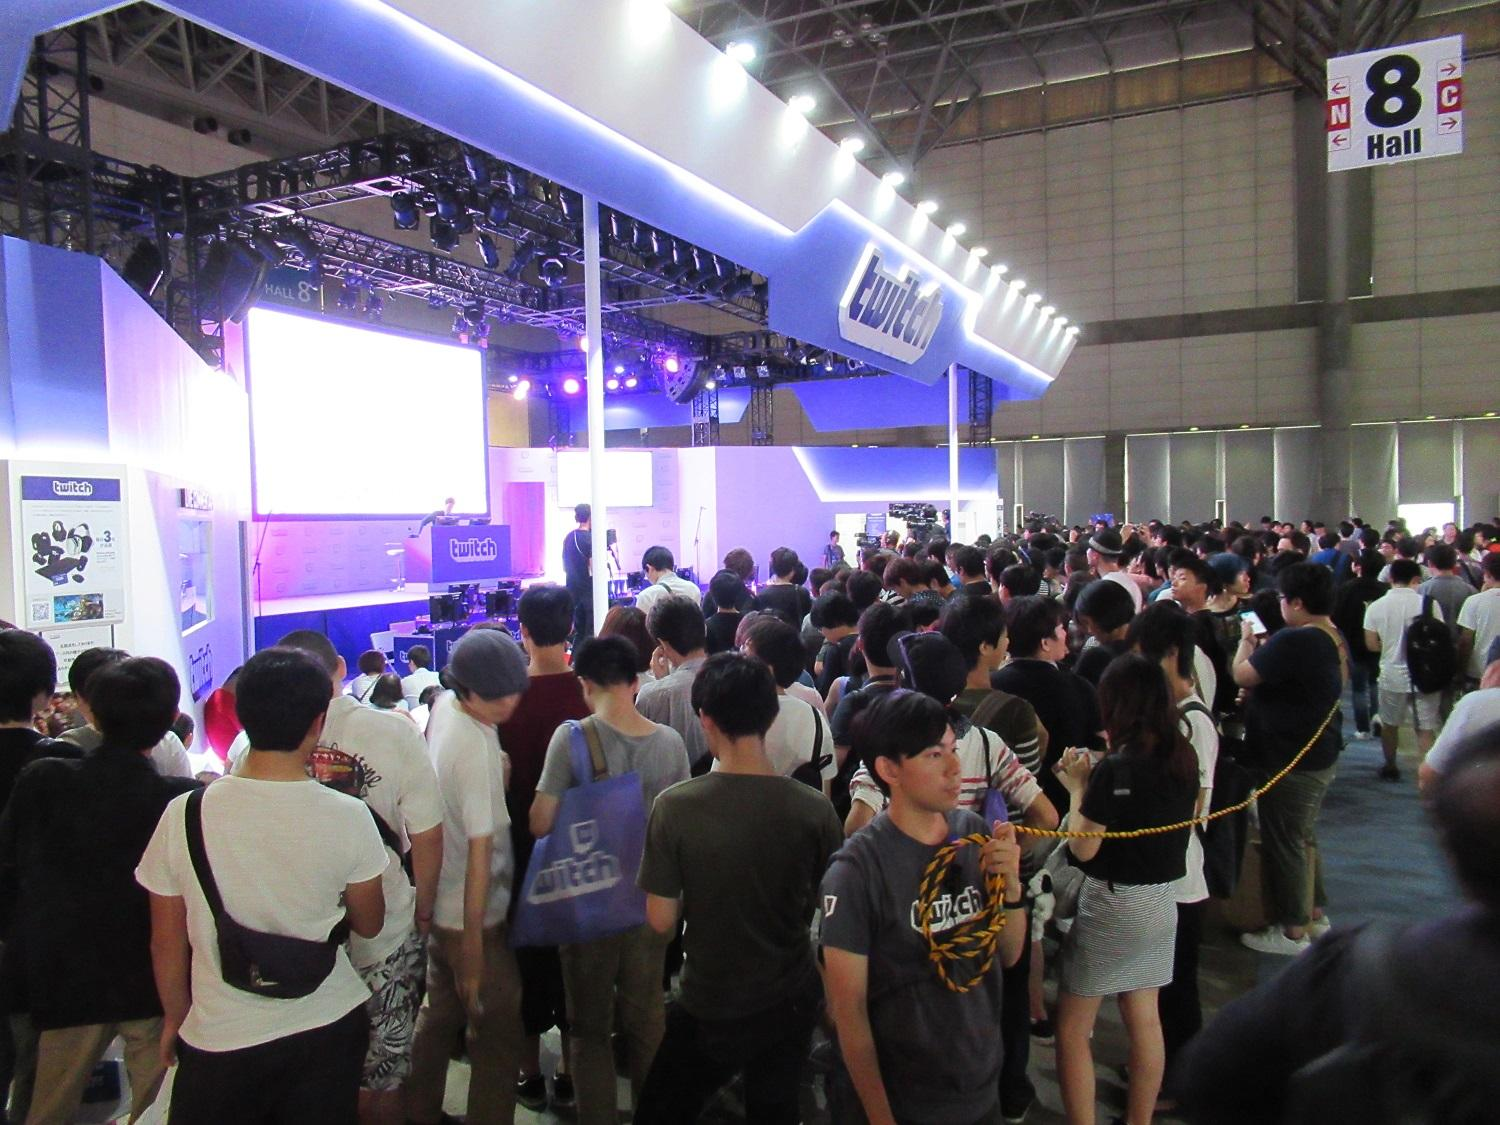 TOKYO GAME SHOW 2016 Twitch Booth